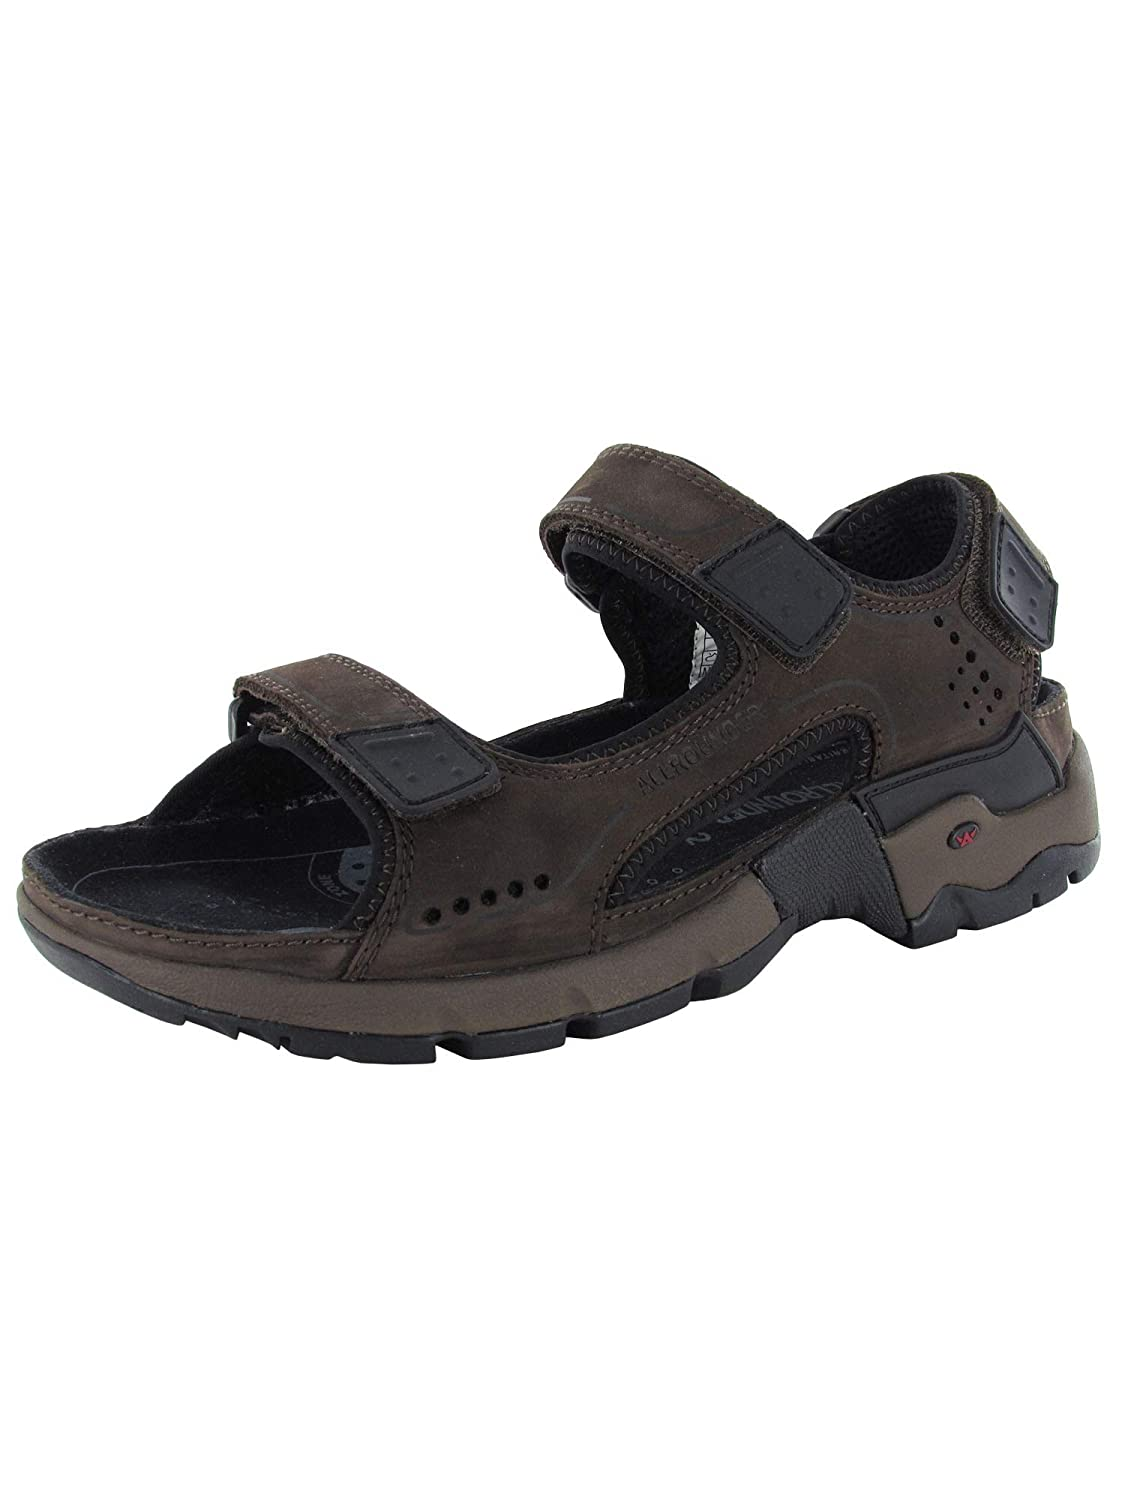 86eabf8137e Amazon.com | Allrounder Mephisto Mens Adiago Open Toe Sport Sandal Shoes |  Shoes